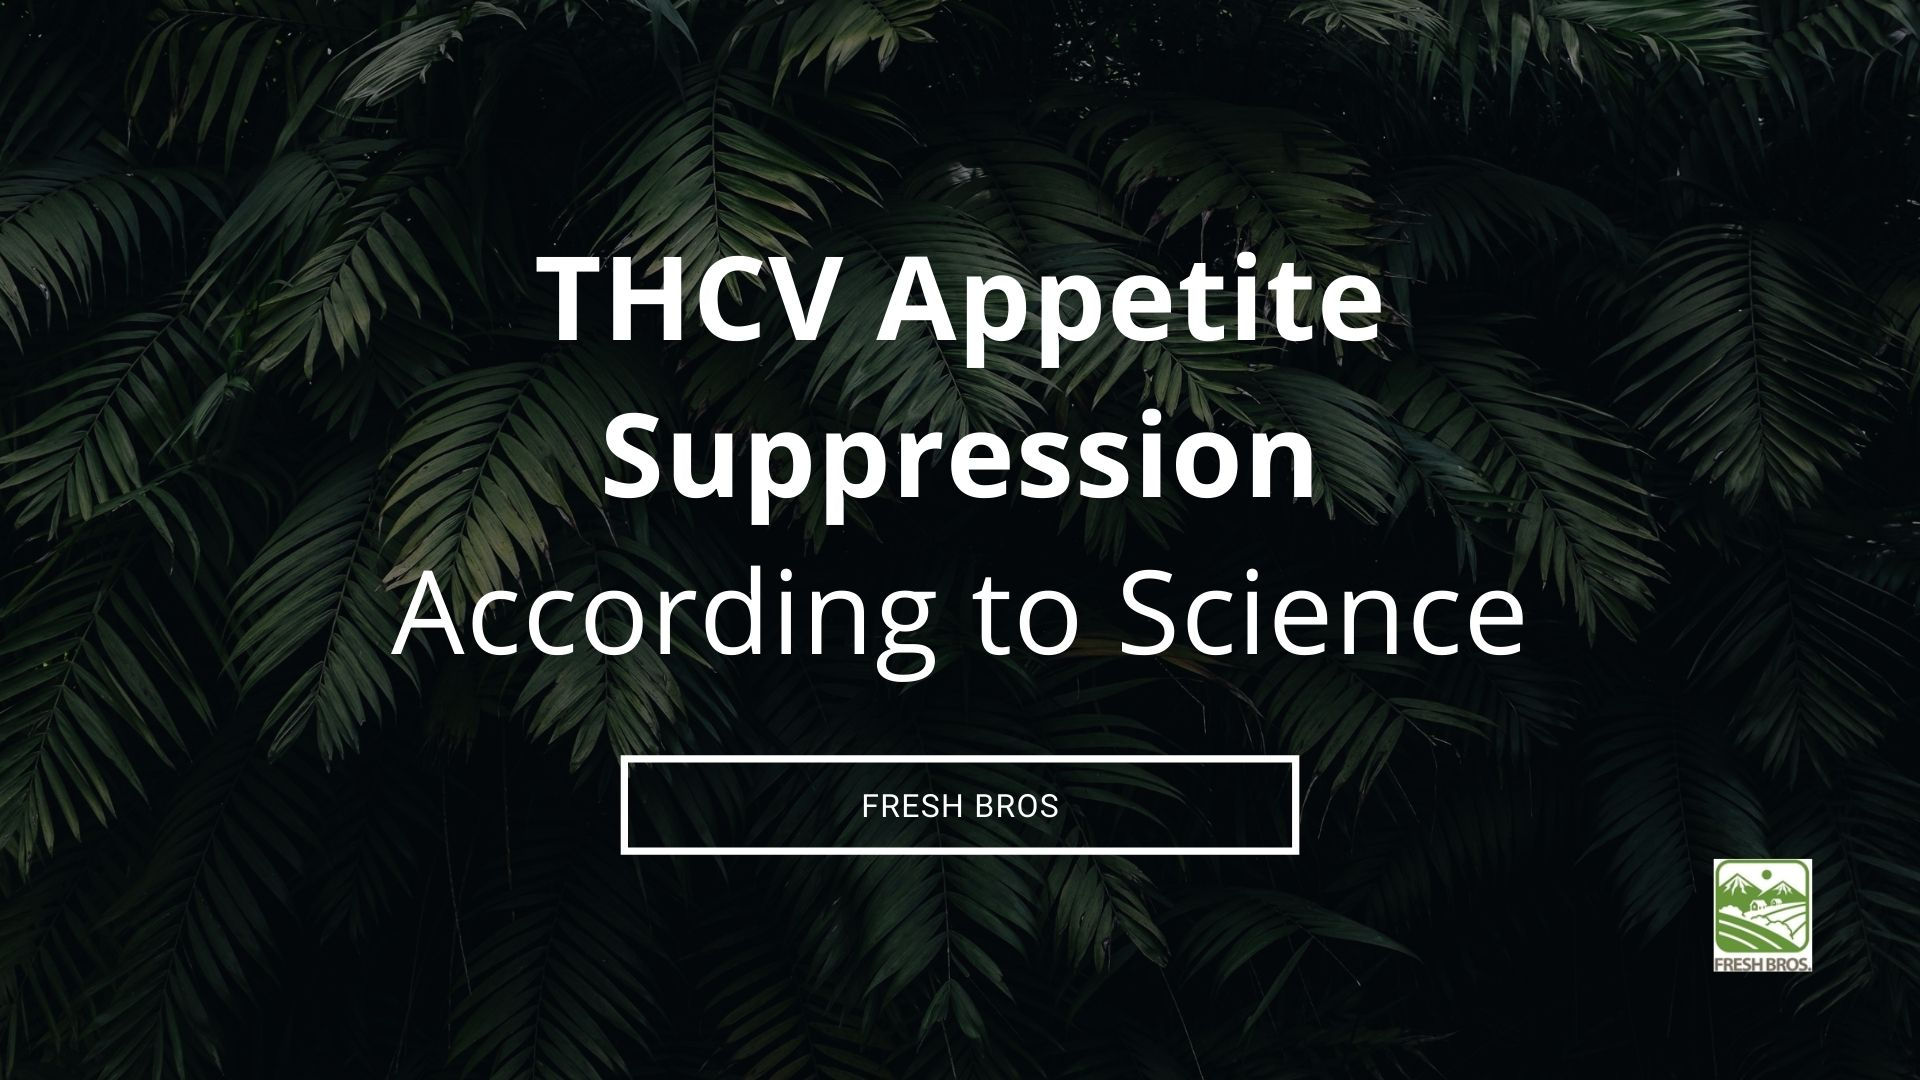 THCV Appetite Suppression - Does it Work?